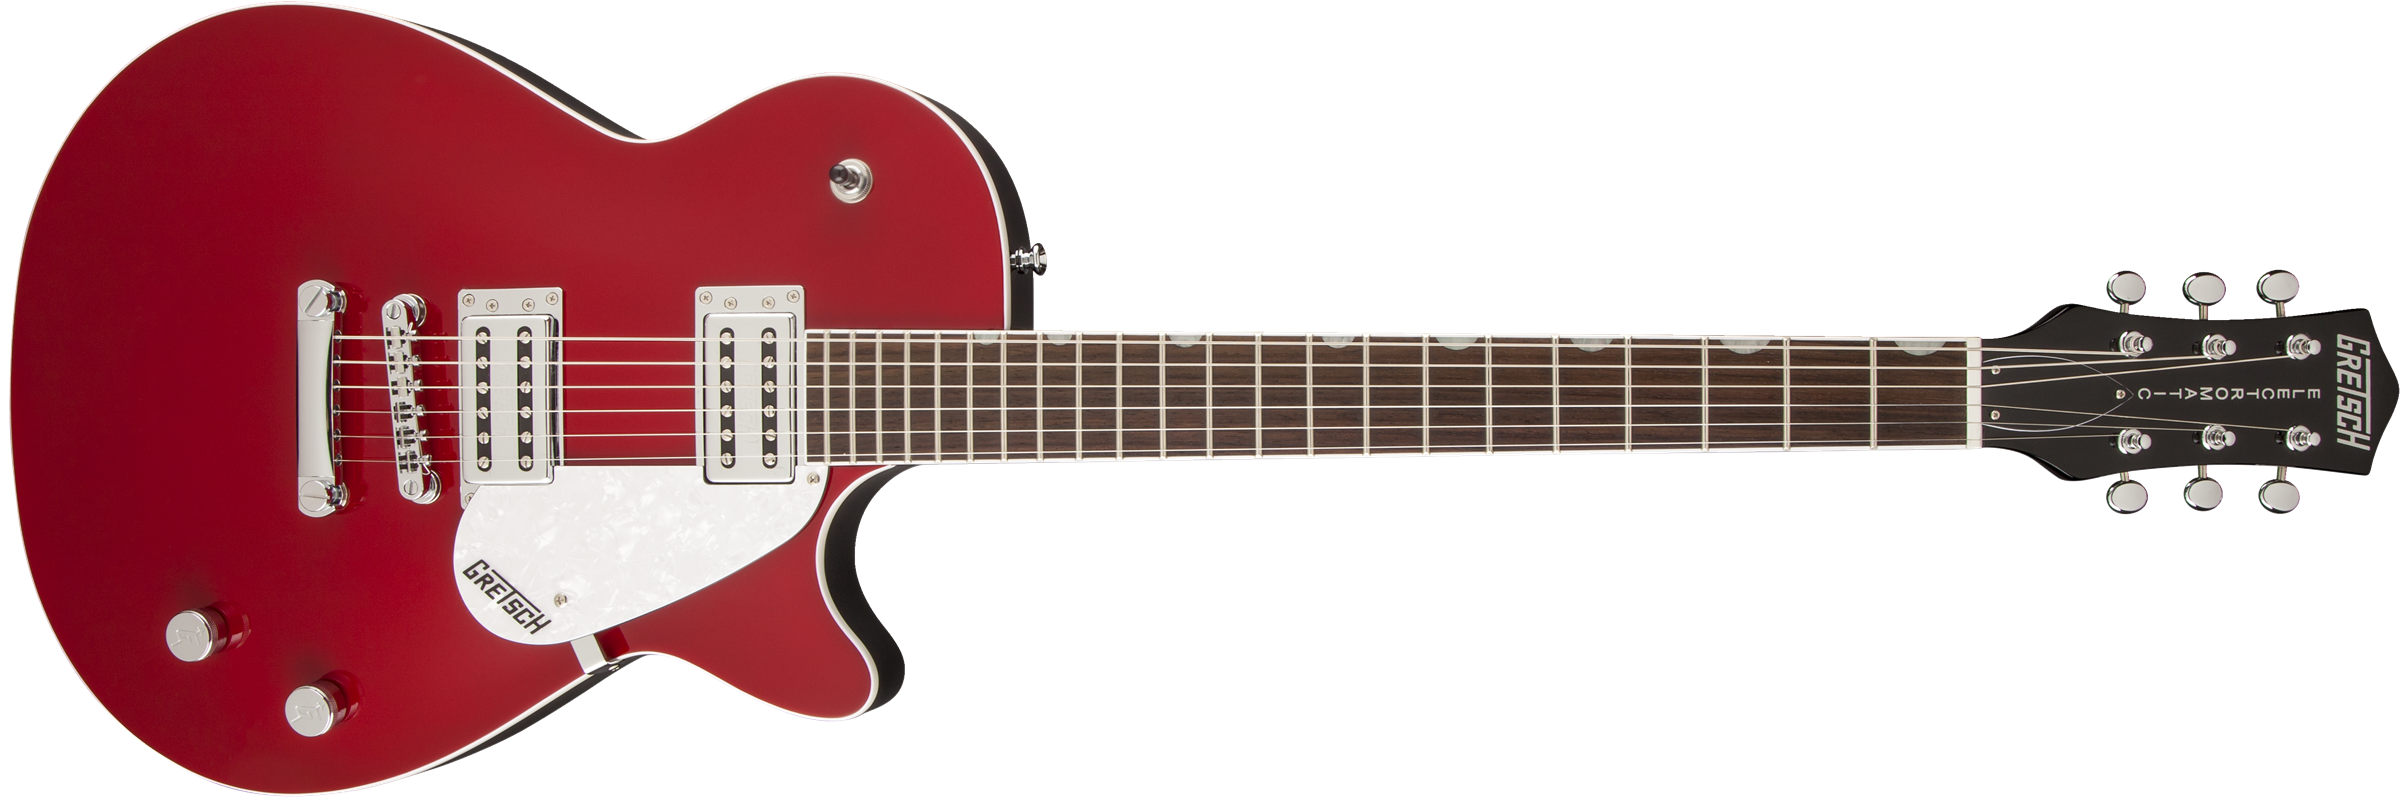 GRETSCH G5421 ELECTROMATIC JET CLUB FB RED - 2519010516